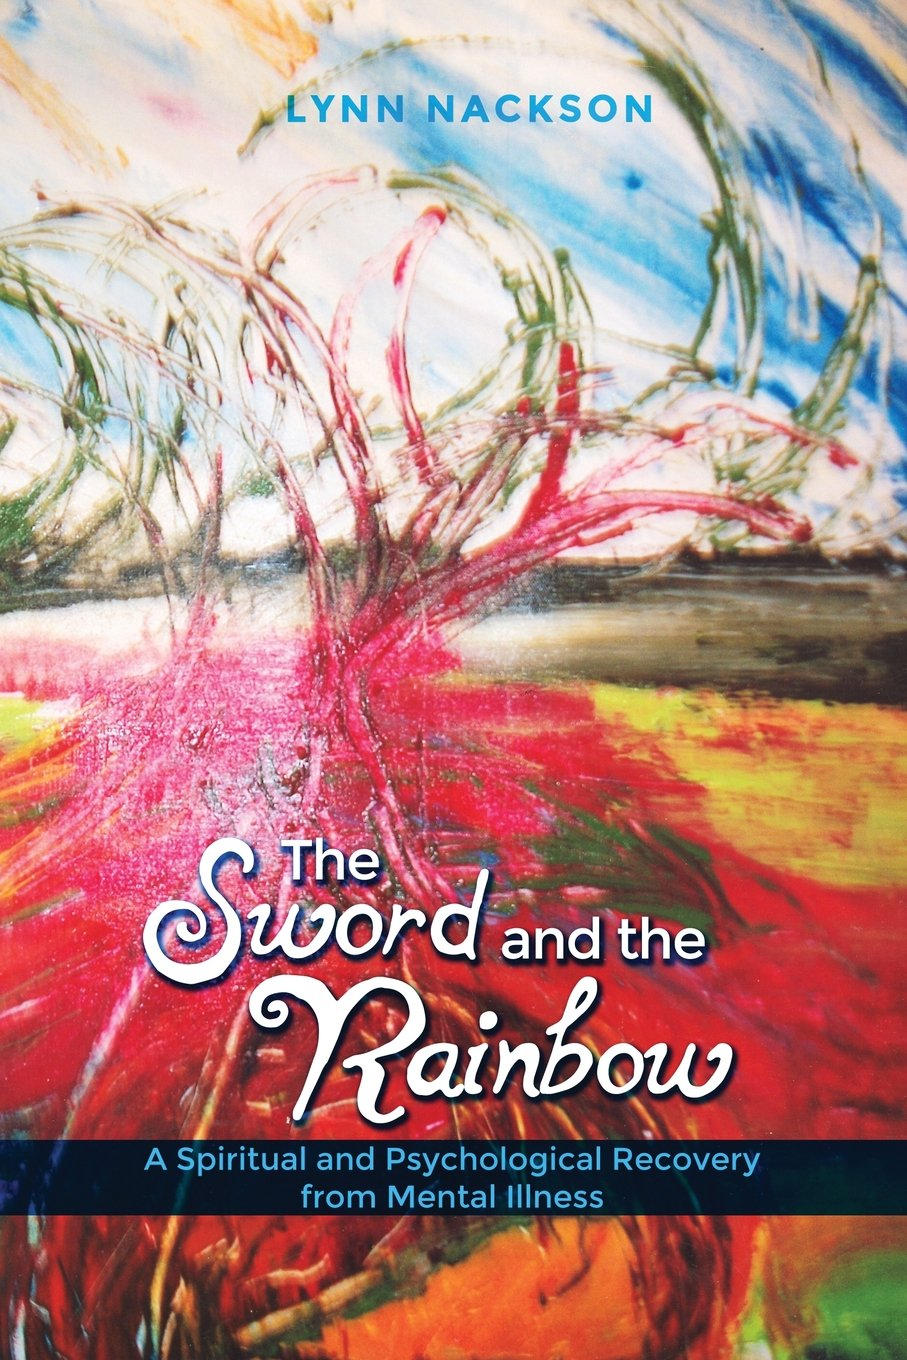 The Sword and the Rainbow: A Spiritual and Psychological Recovery from Mental Illness